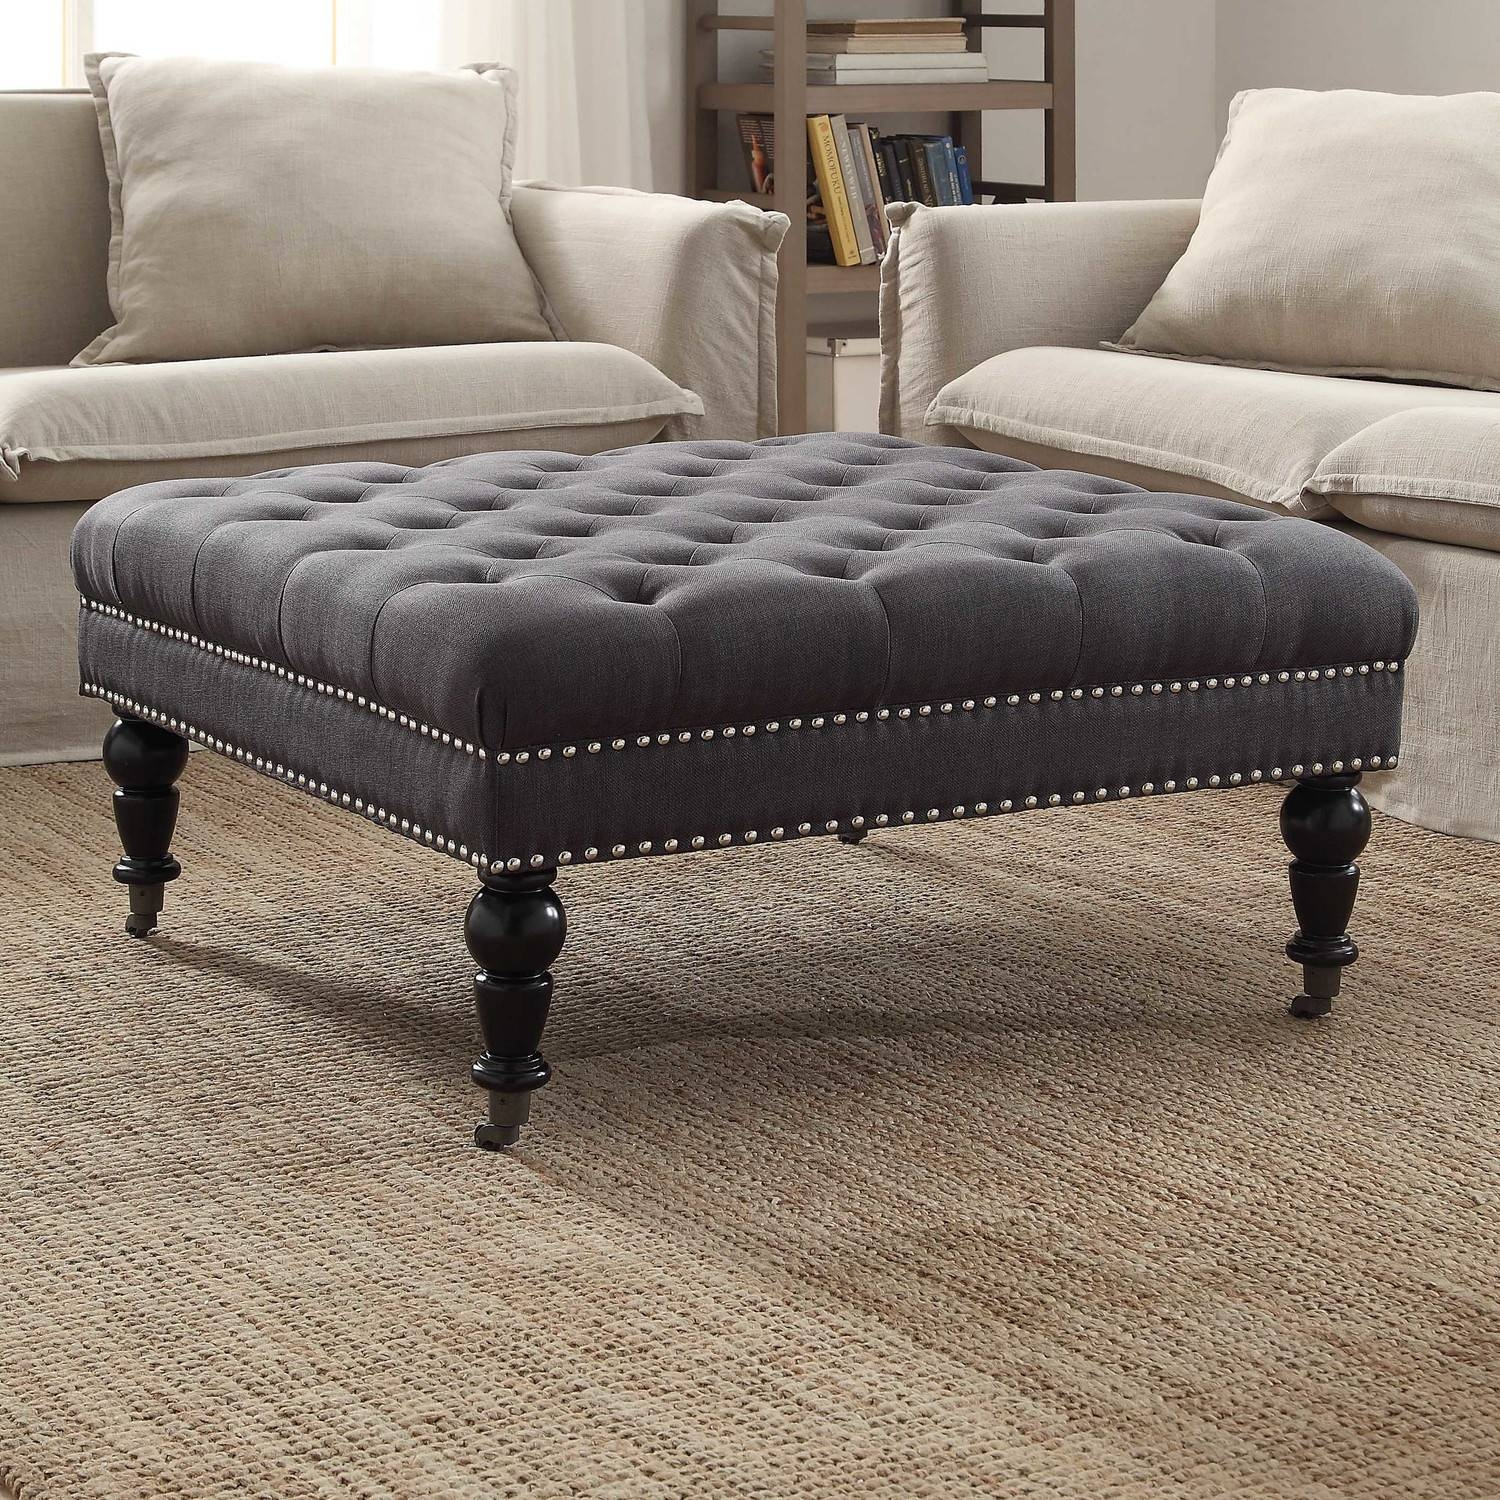 Furniture: Nice Oversized Ottoman For Living Room Furniture Idea Throughout Oversized Round Coffee Tables (View 29 of 30)